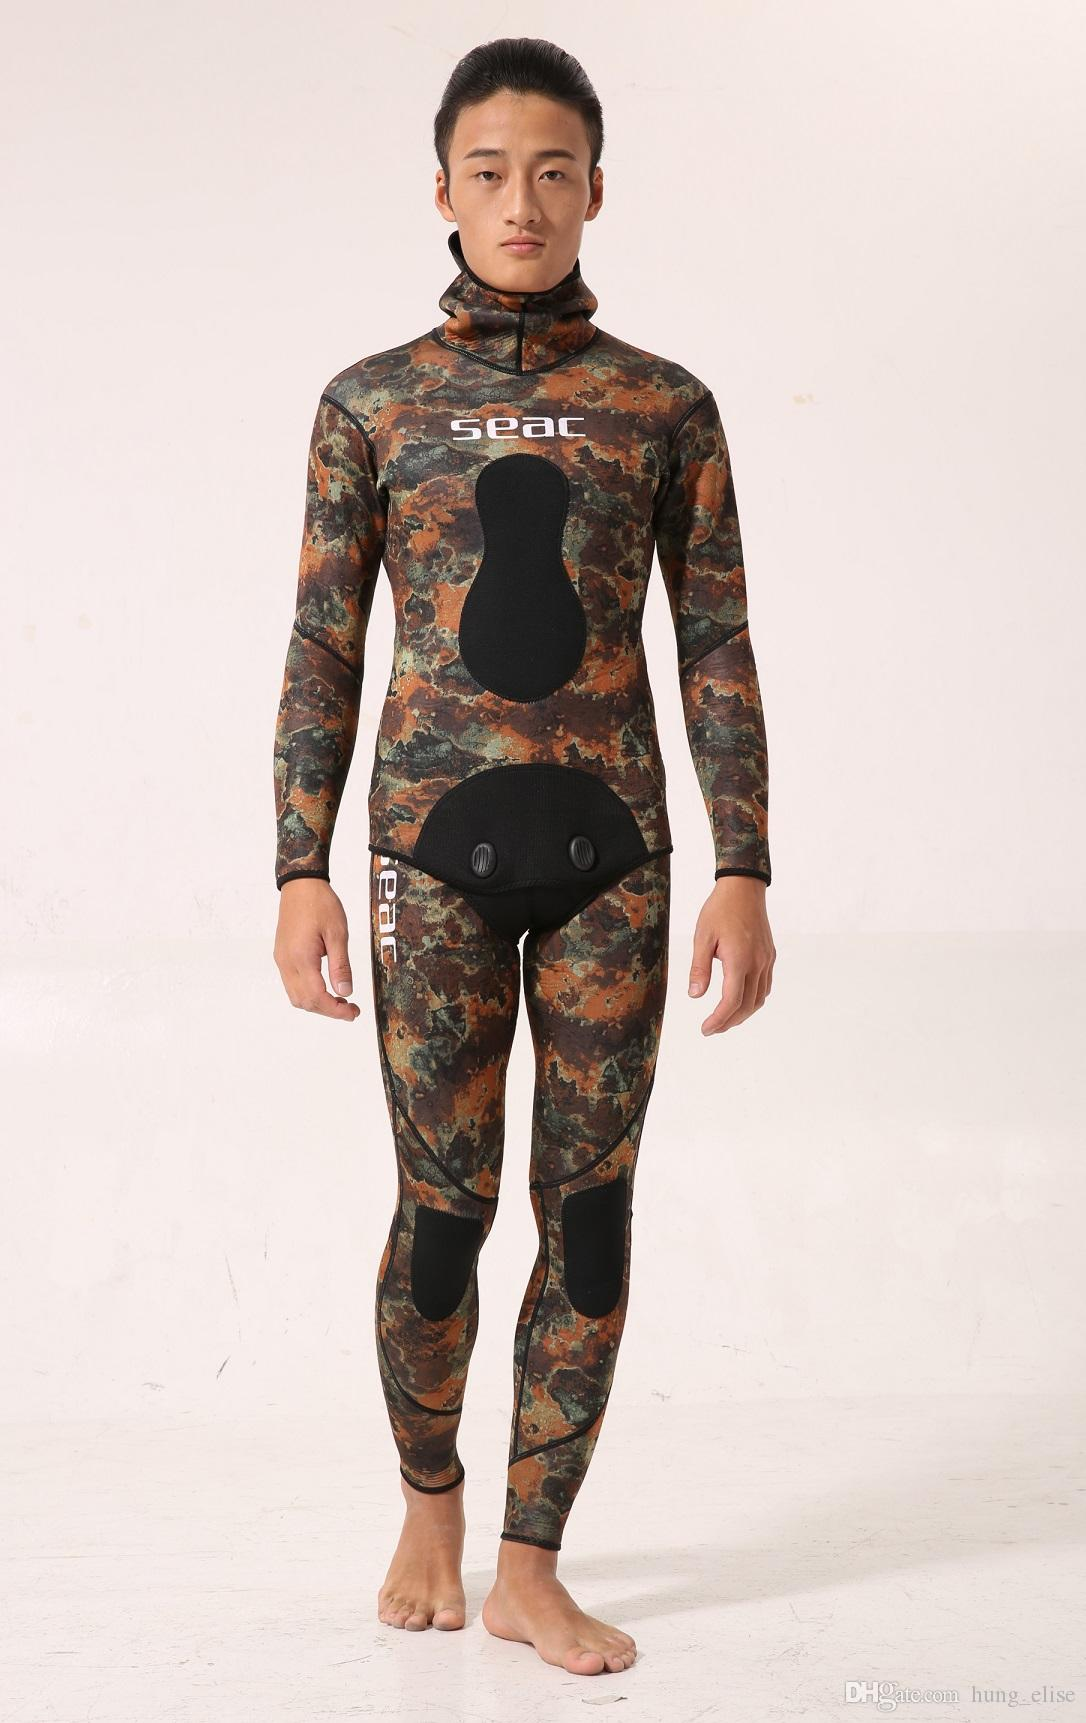 SEAC Mens Camo Stealth Neoprene Spearfishing Suits 3.5 Thickness Available  With Hooded Sealed Diving Spearfishing Wetsuits Wetsuit Online with   251.43 Set ... 8720ff08e